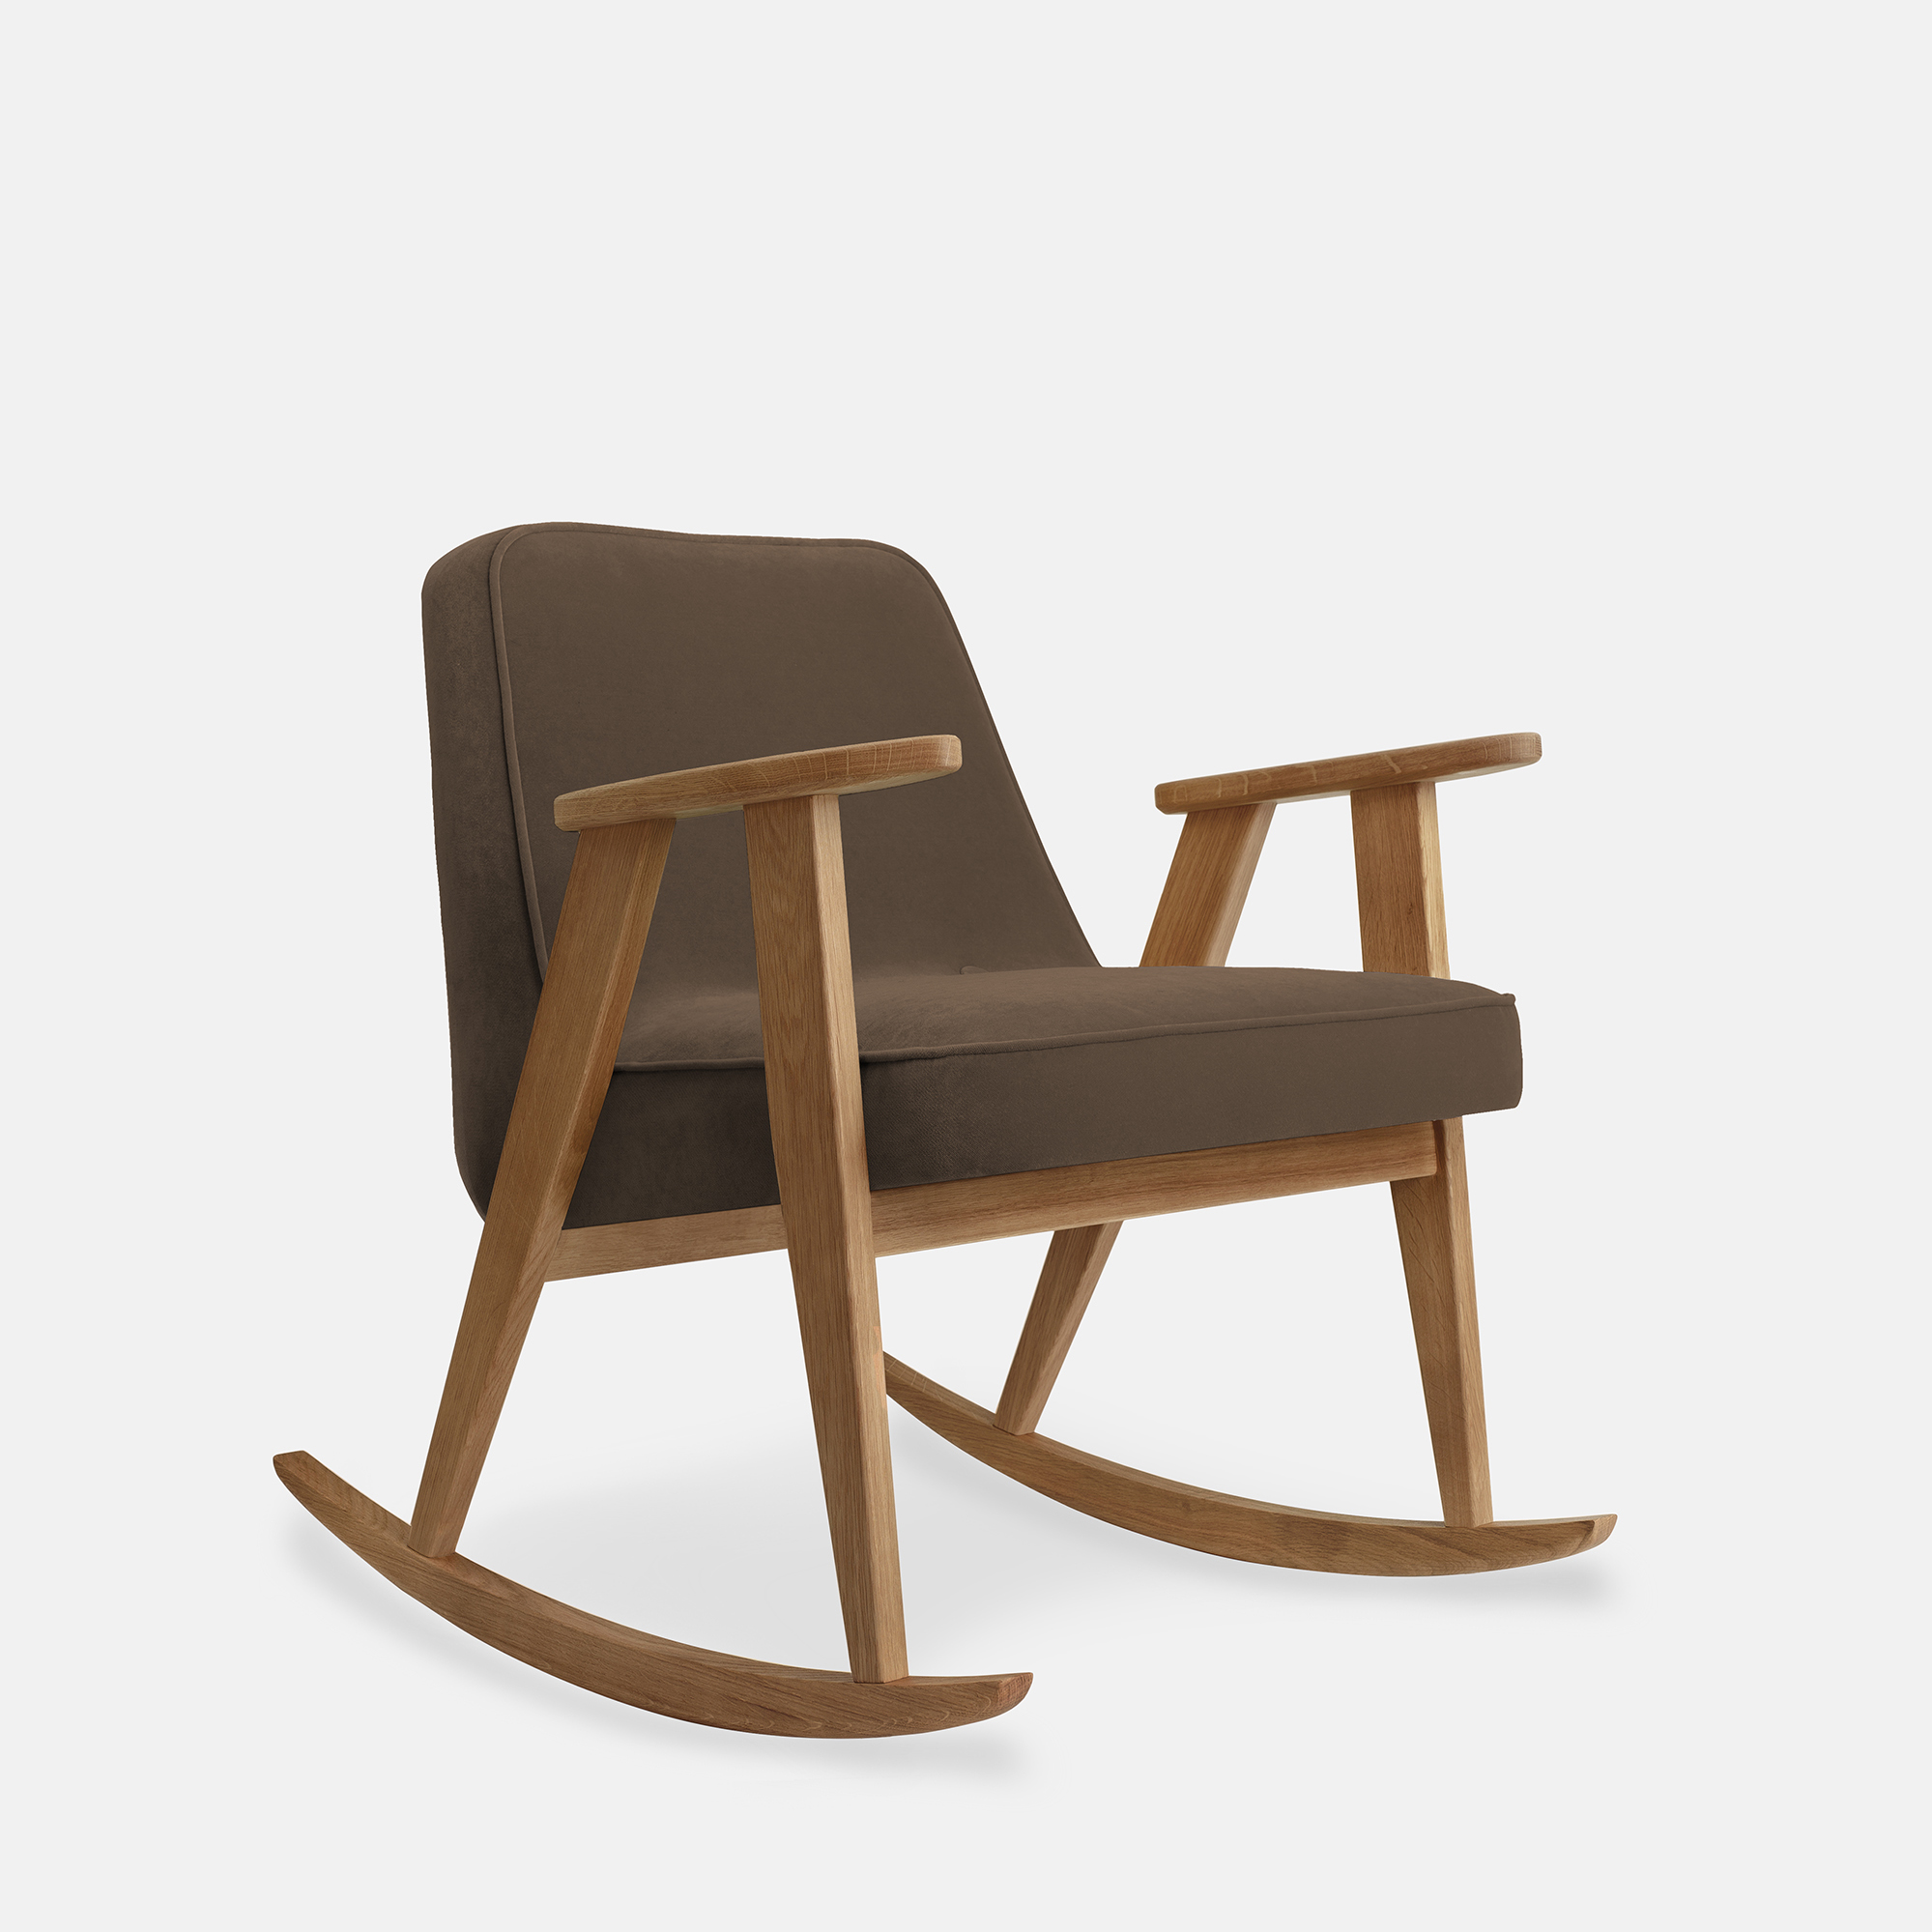 366-Concept-366-Rocking-Chair-W02-Velvet-Taupe